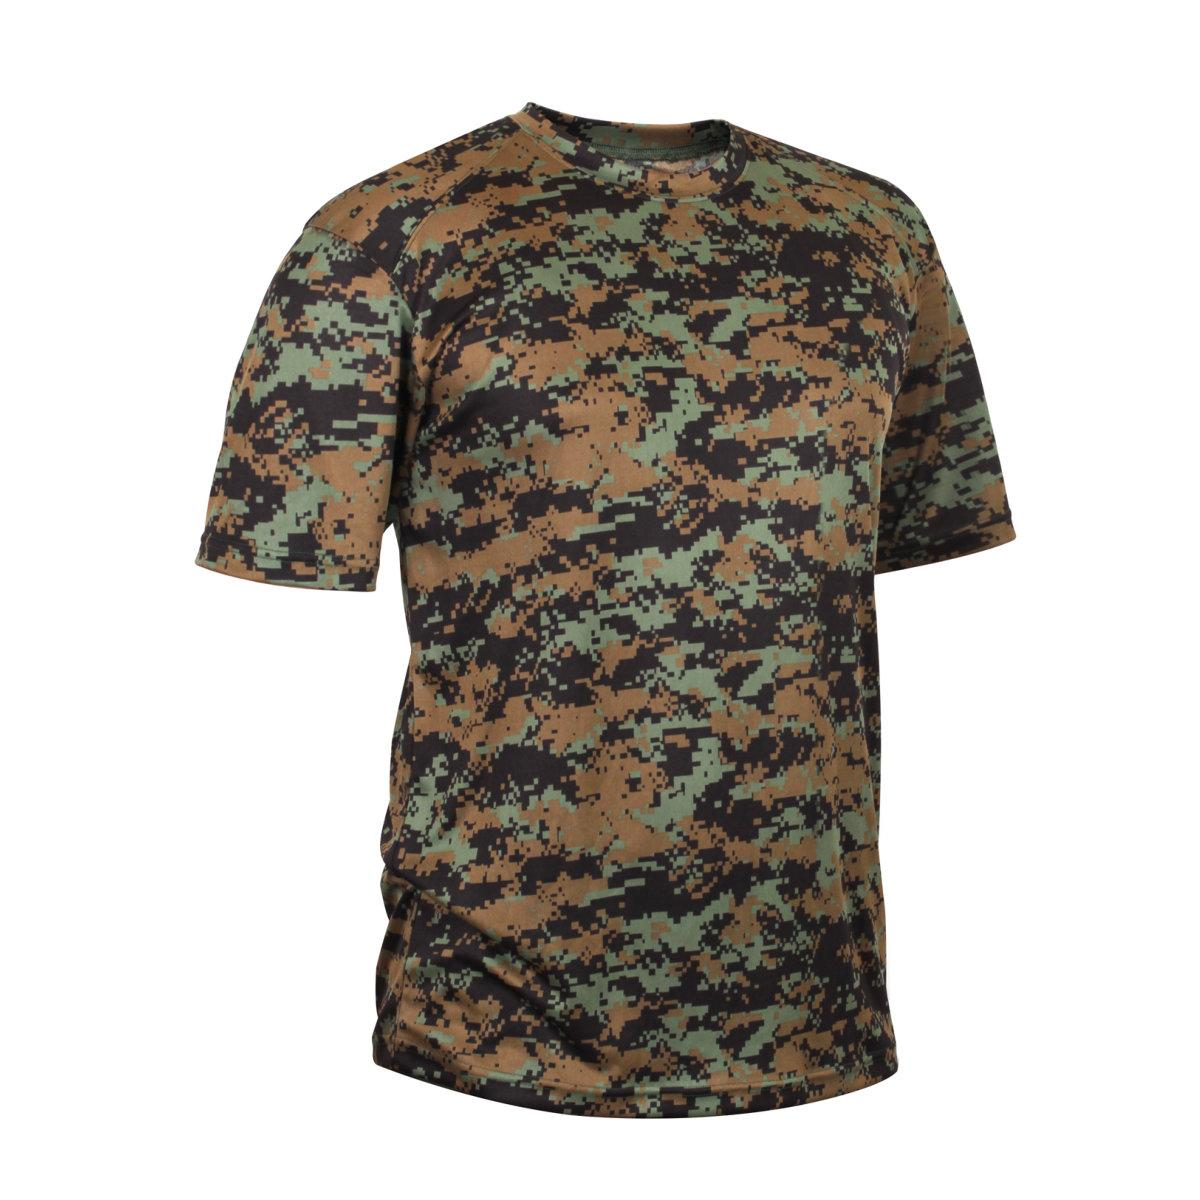 rothco camouflage polyester performance t shirt woodland digital camo ebay. Black Bedroom Furniture Sets. Home Design Ideas